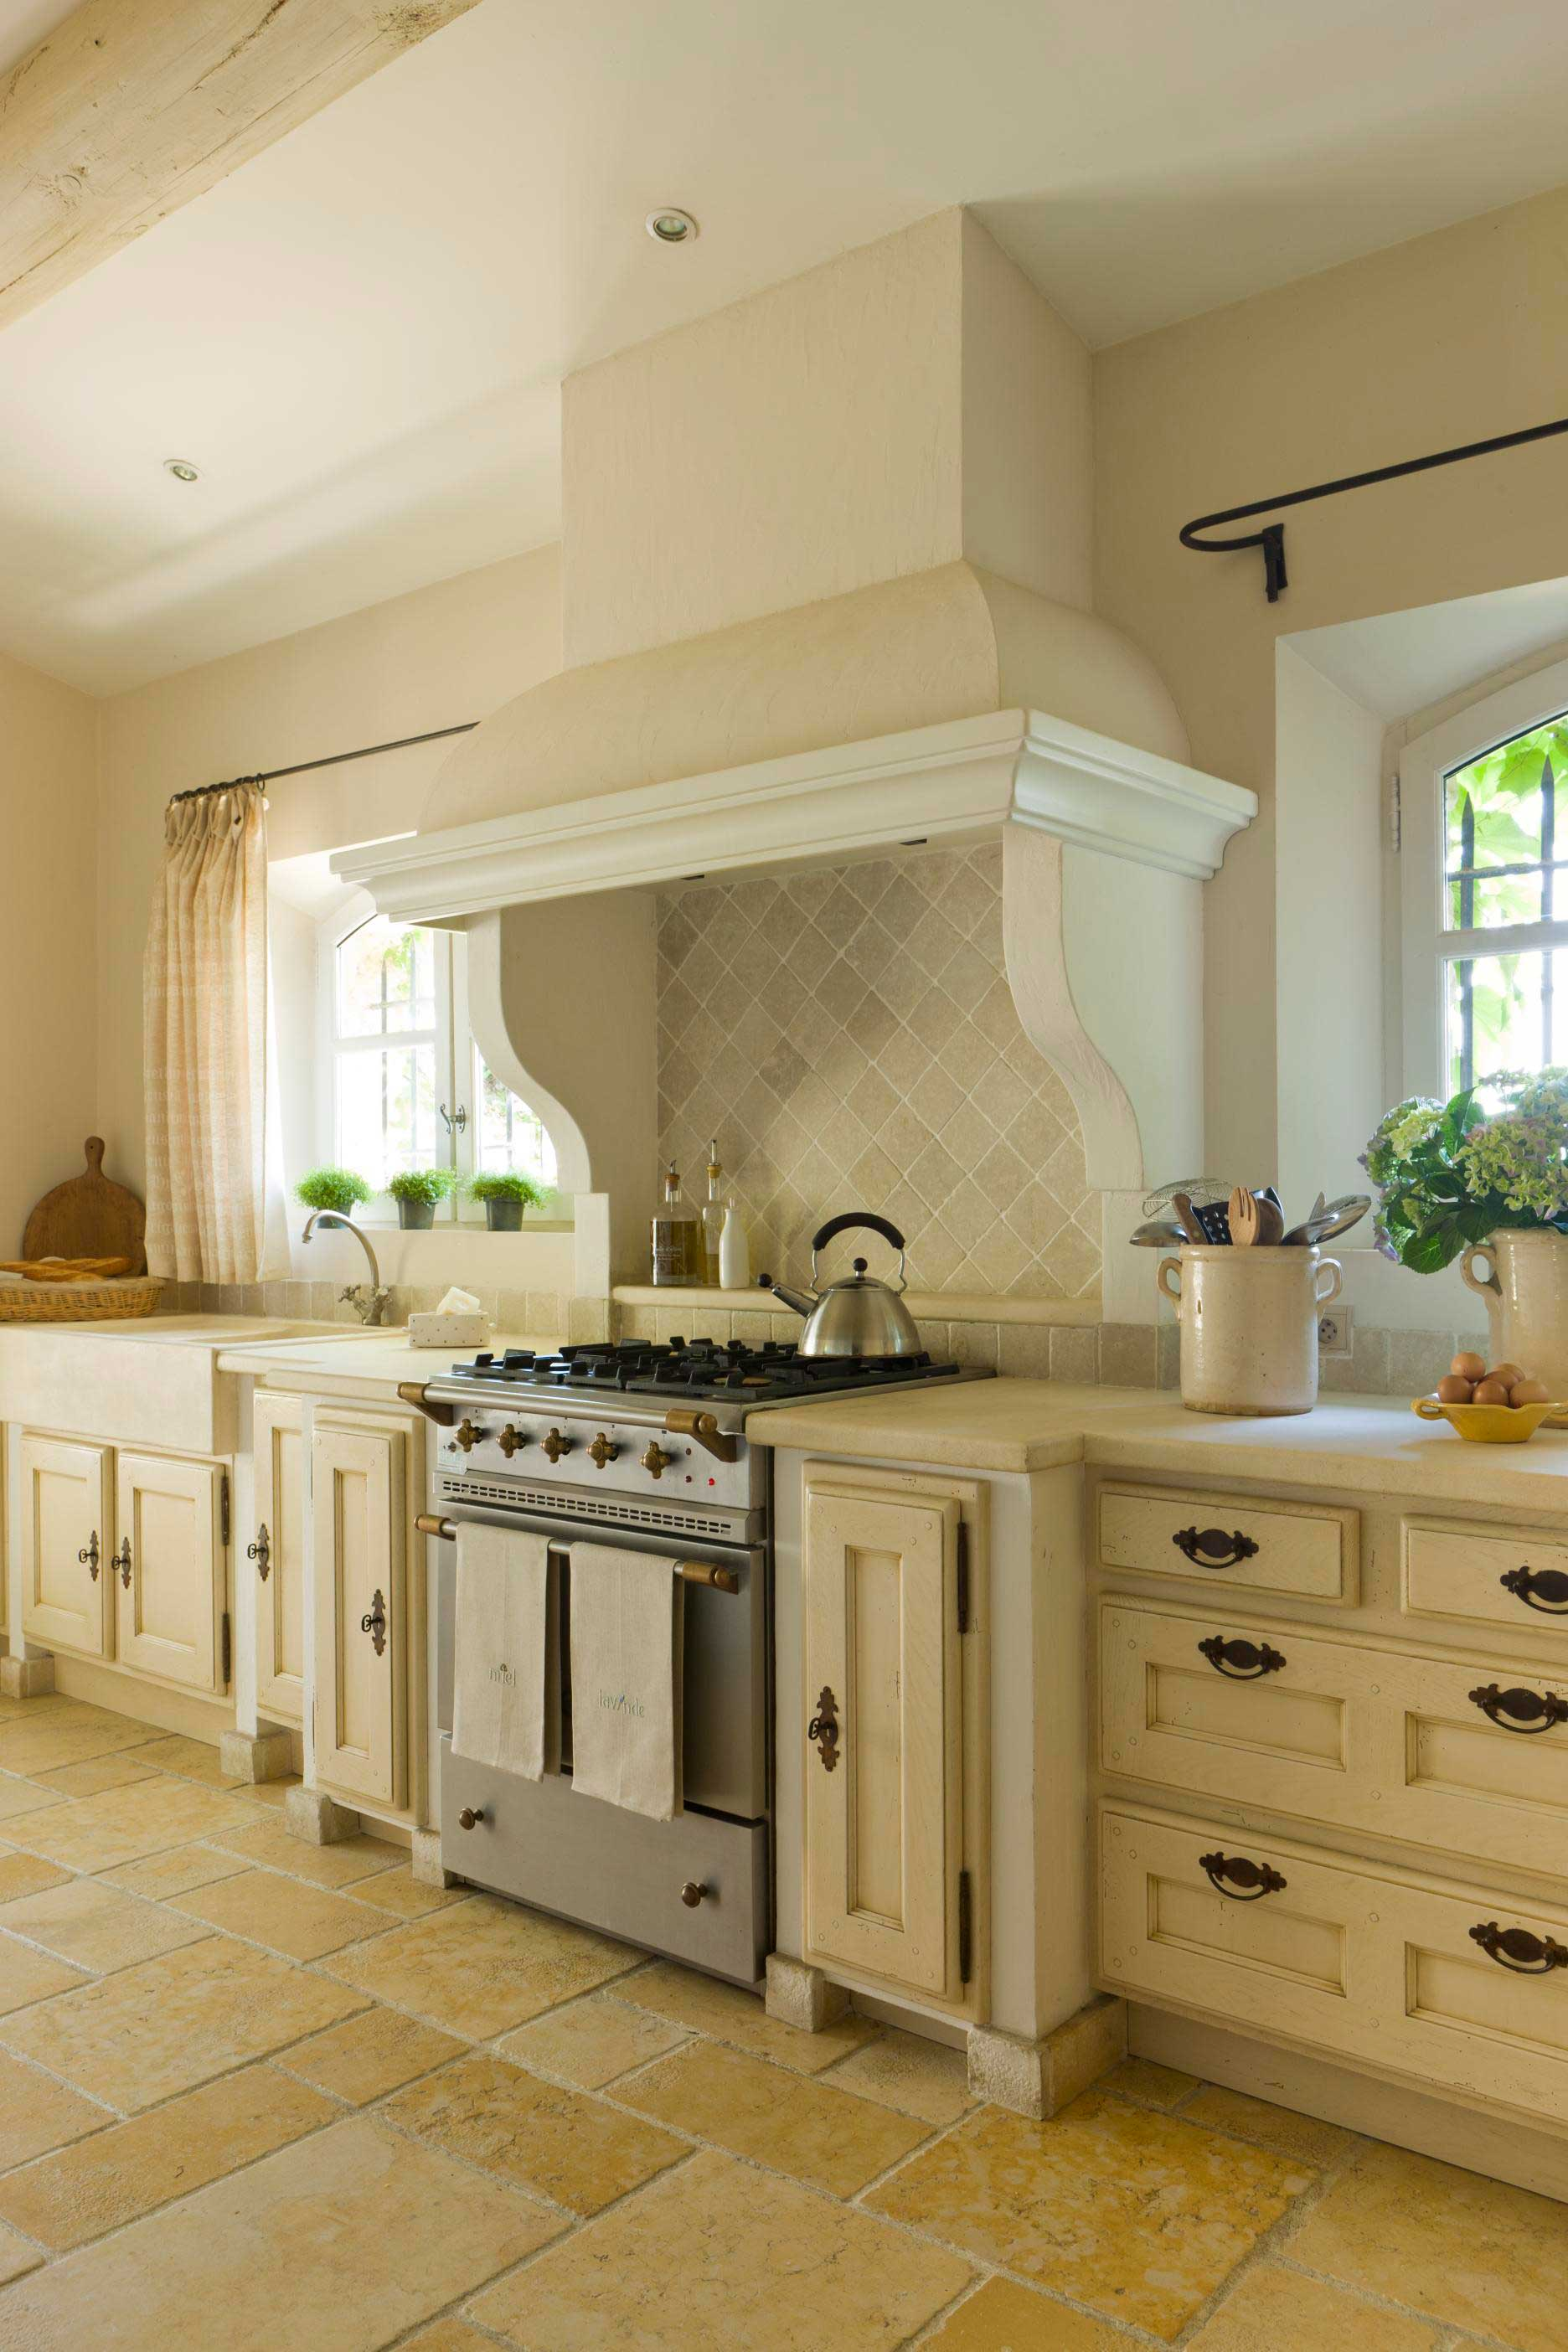 Swish Gordon Renovated Kitchen French Country Home That Embraces History Home Country Home Kitchen Ideas Country Home Kitchen Collection kitchen Country Home Kitchen